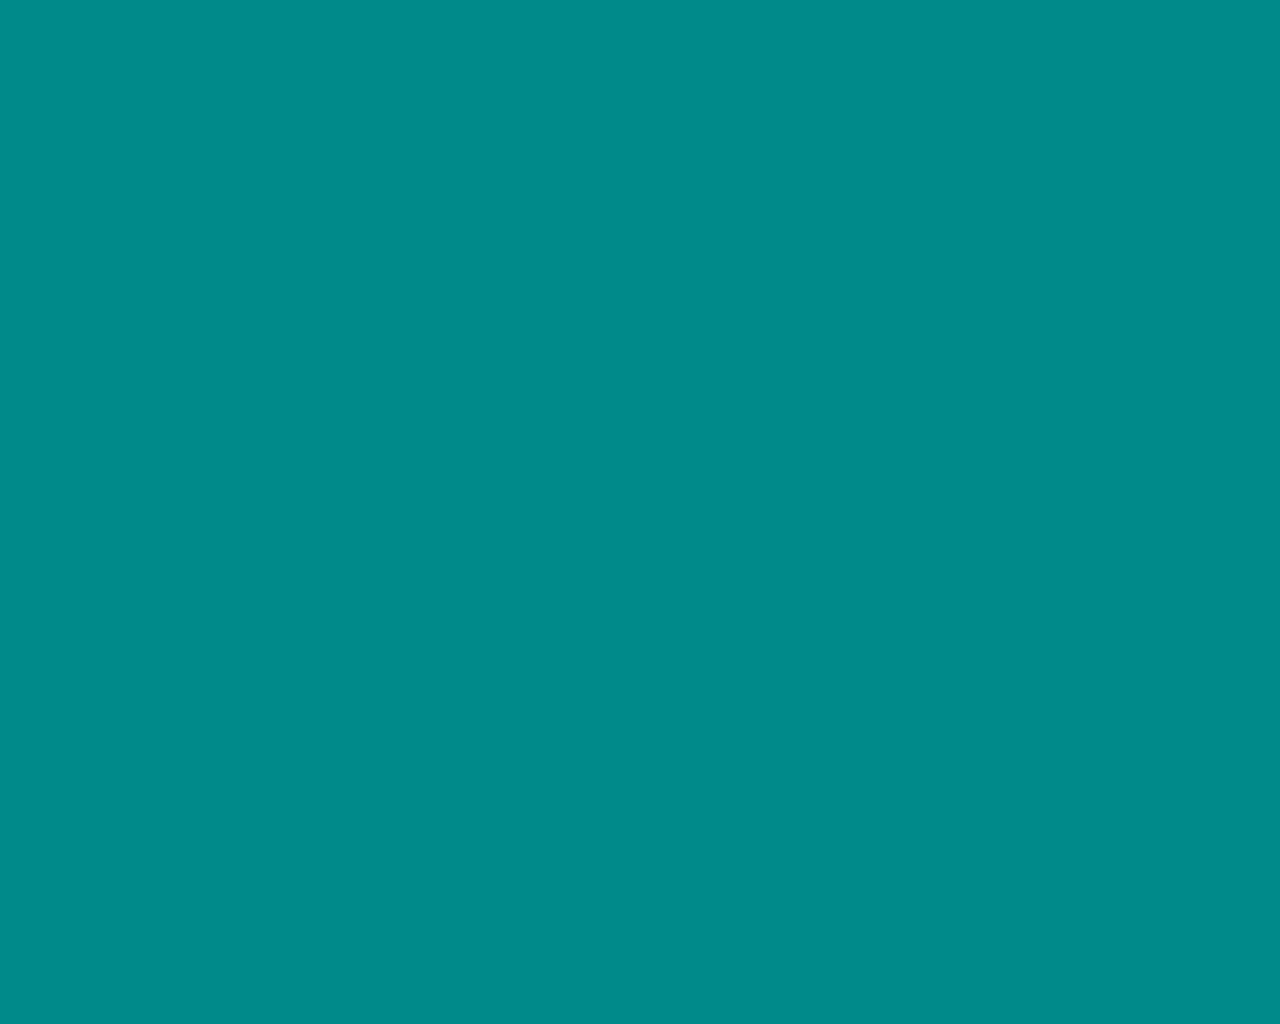 1280x1024 Dark Cyan Solid Color Background